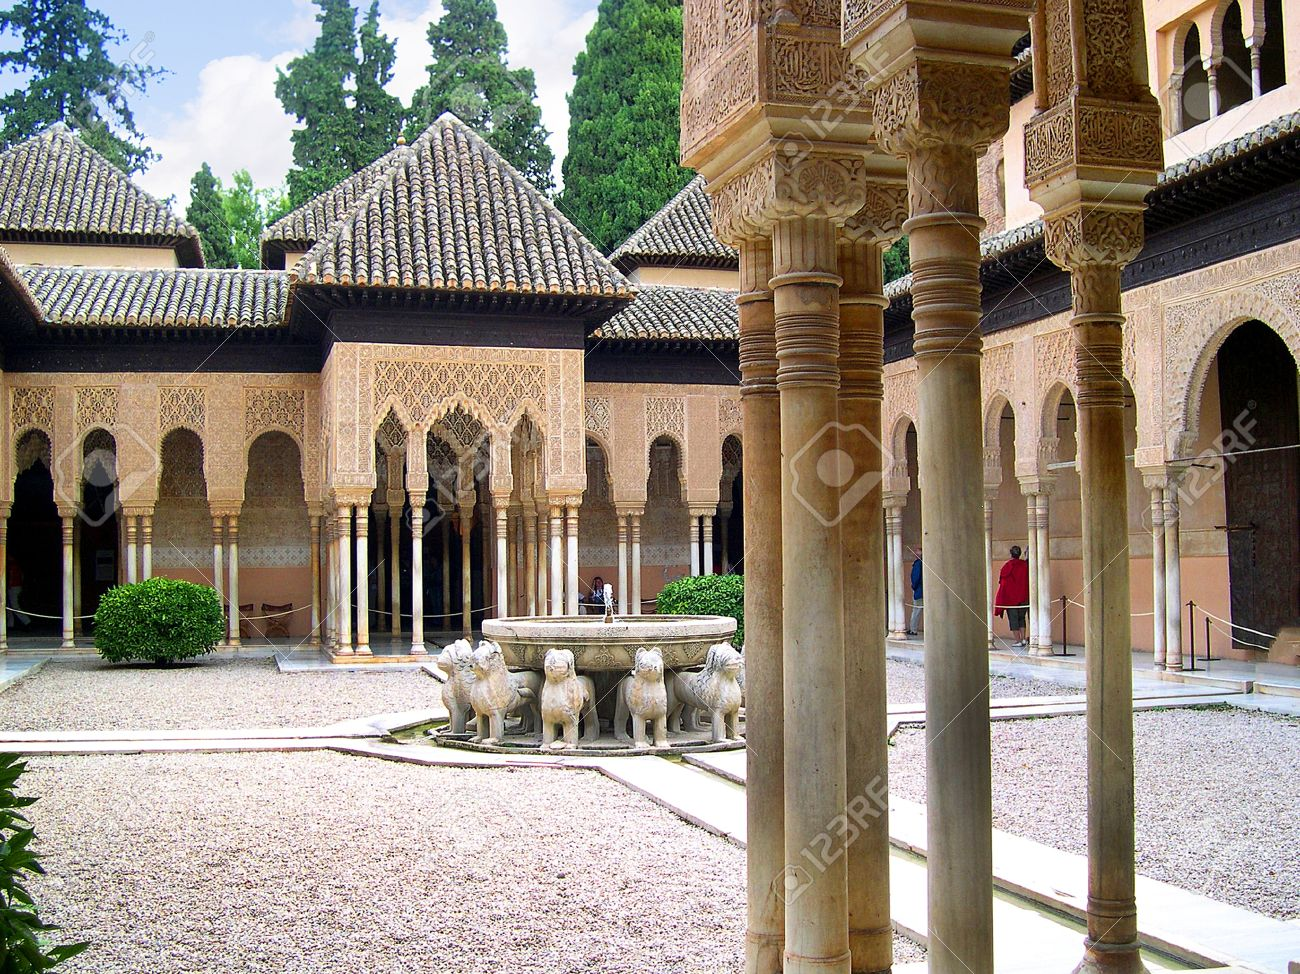 the Court of Lions at the 13th century Alhambra Palace in Granada